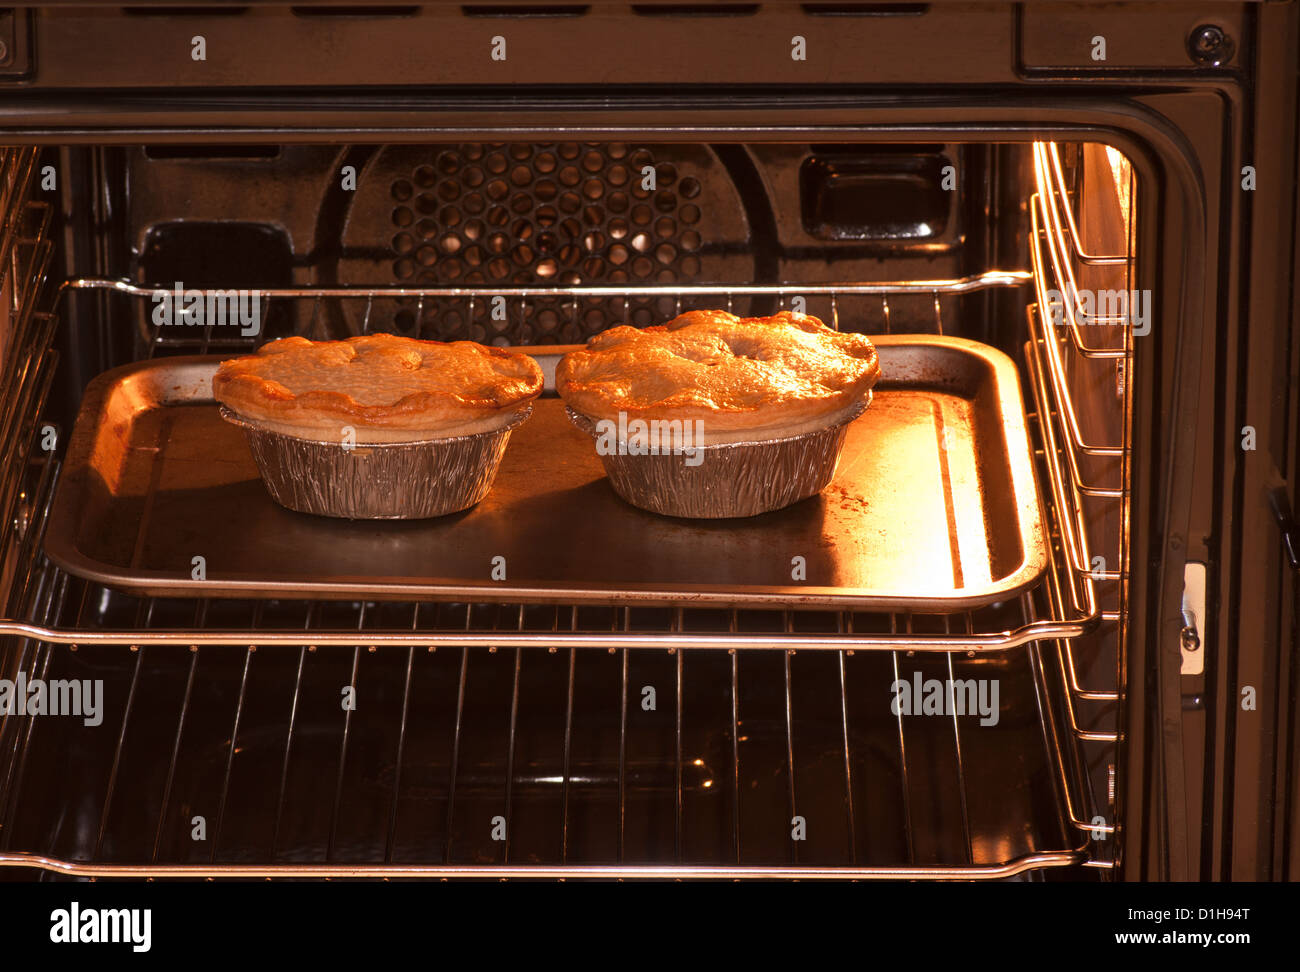 How to bake pies in the oven: tips for beginners 18